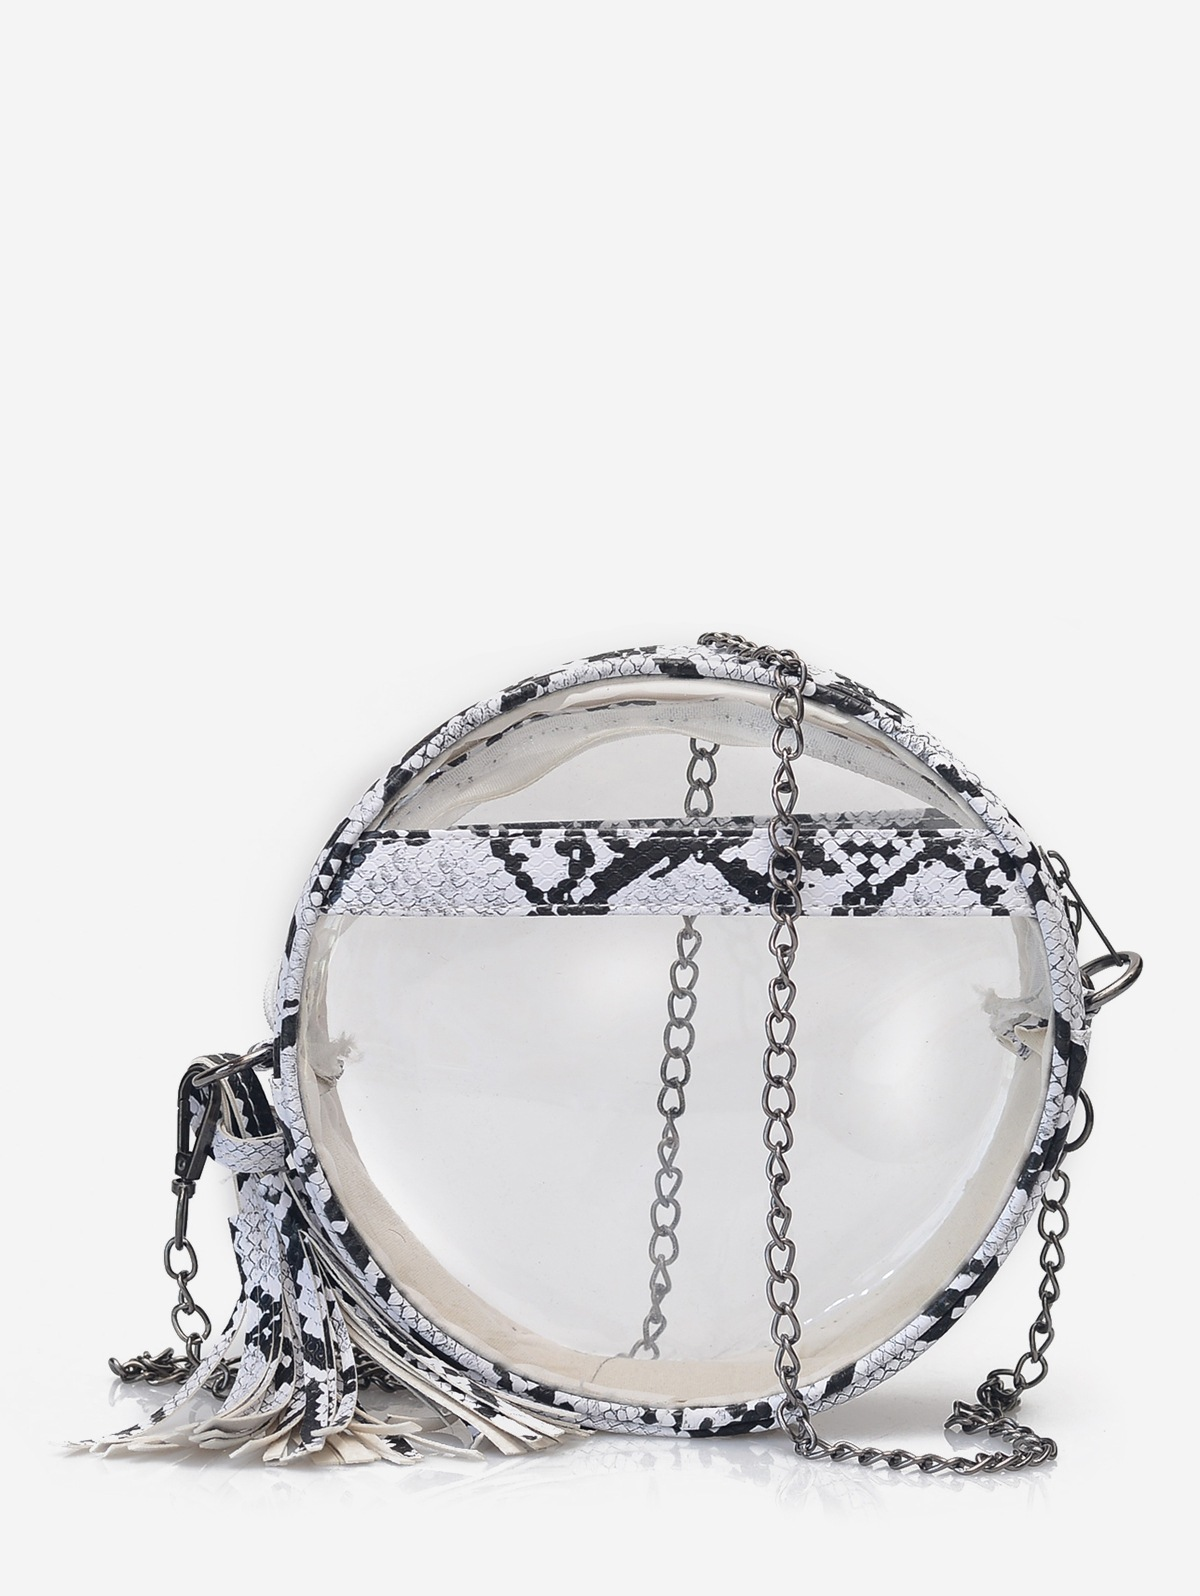 Transparent Snakeskin Crossbody Bag